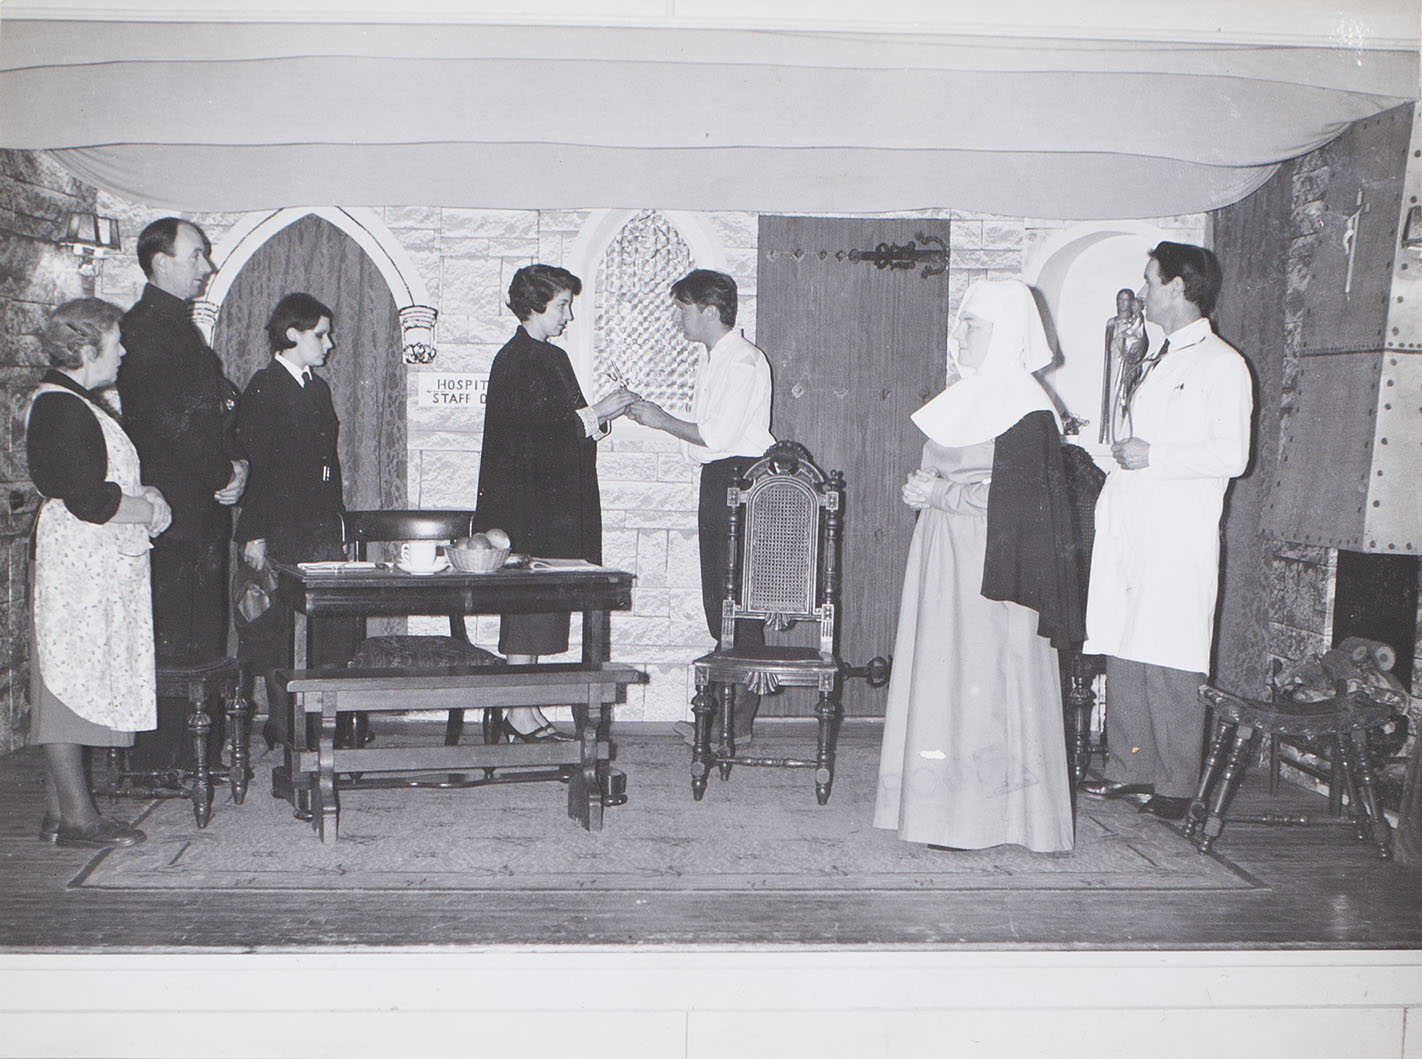 Photograph of the cast in a scene from the play 'Bonaventure' presented by Bishopsteignton Players